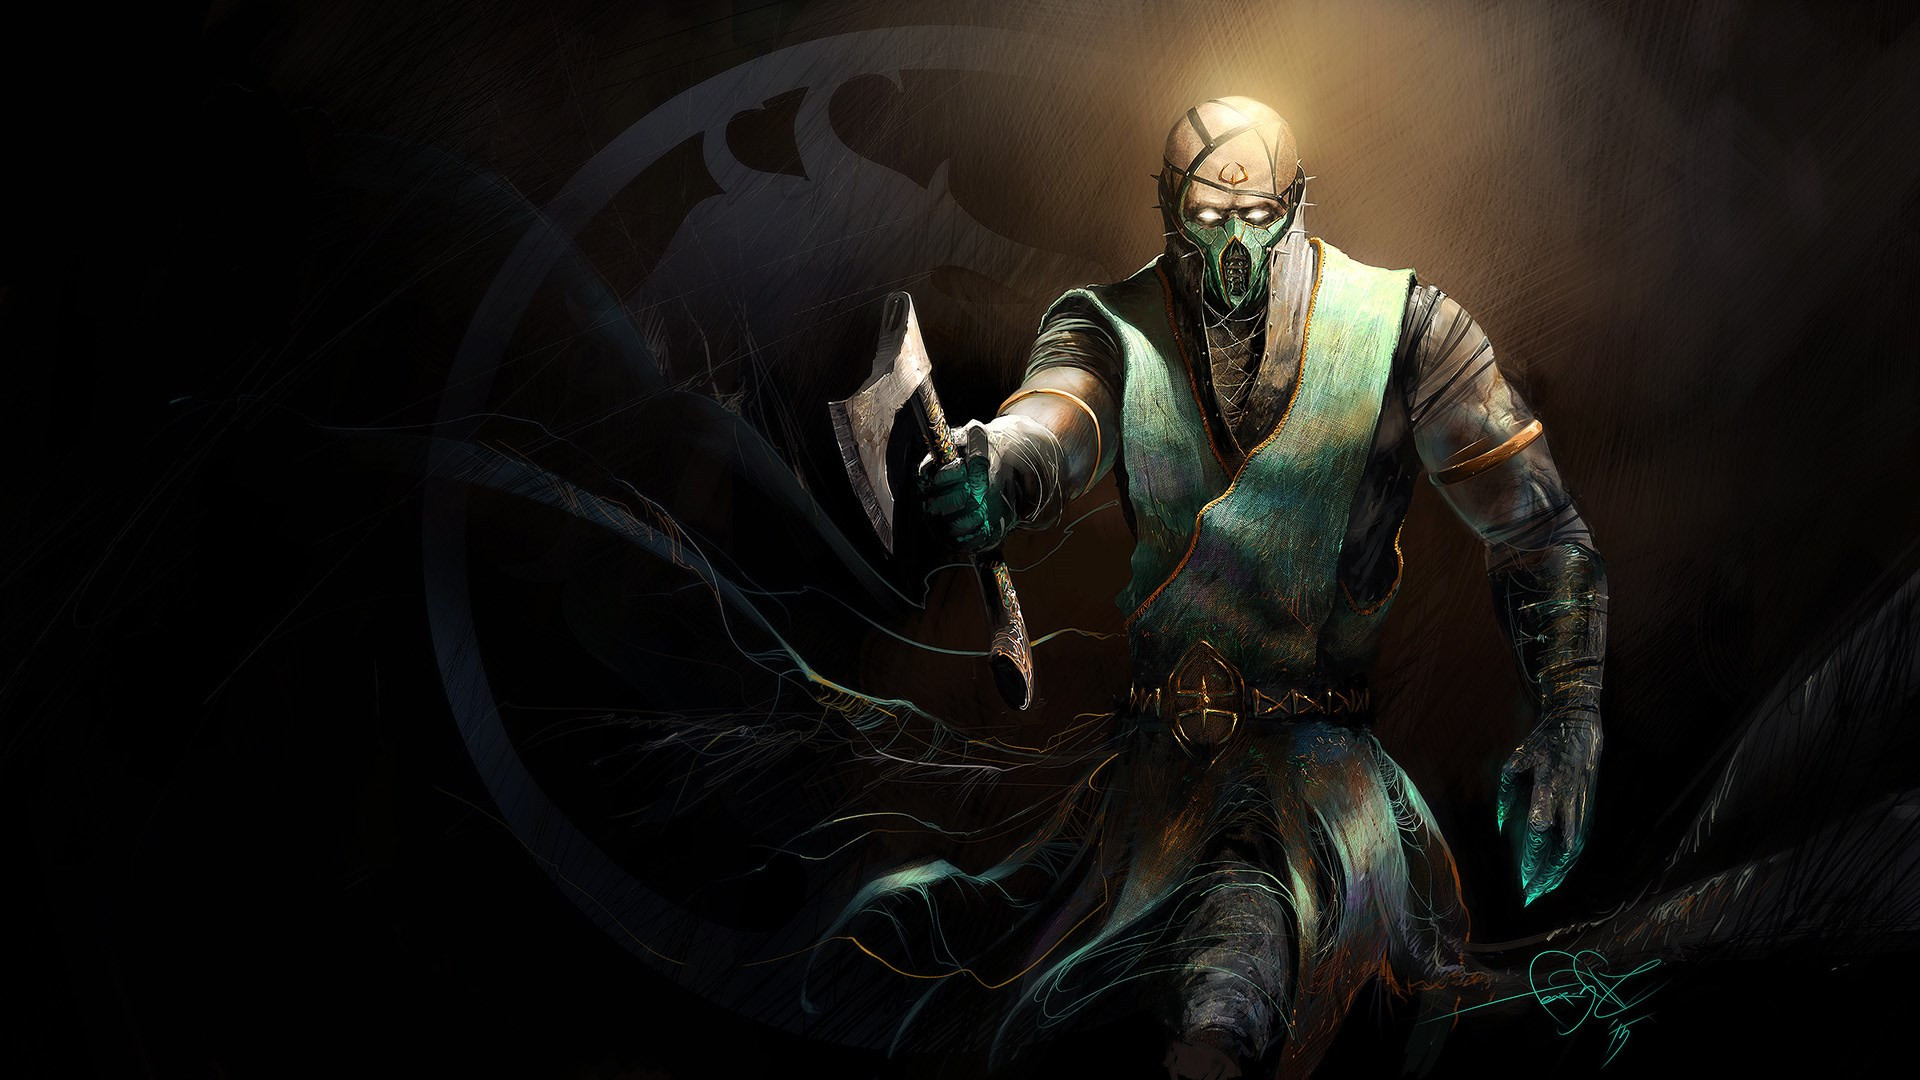 Chameleon from Mortal Kombat video game wallpaper 1920x1080